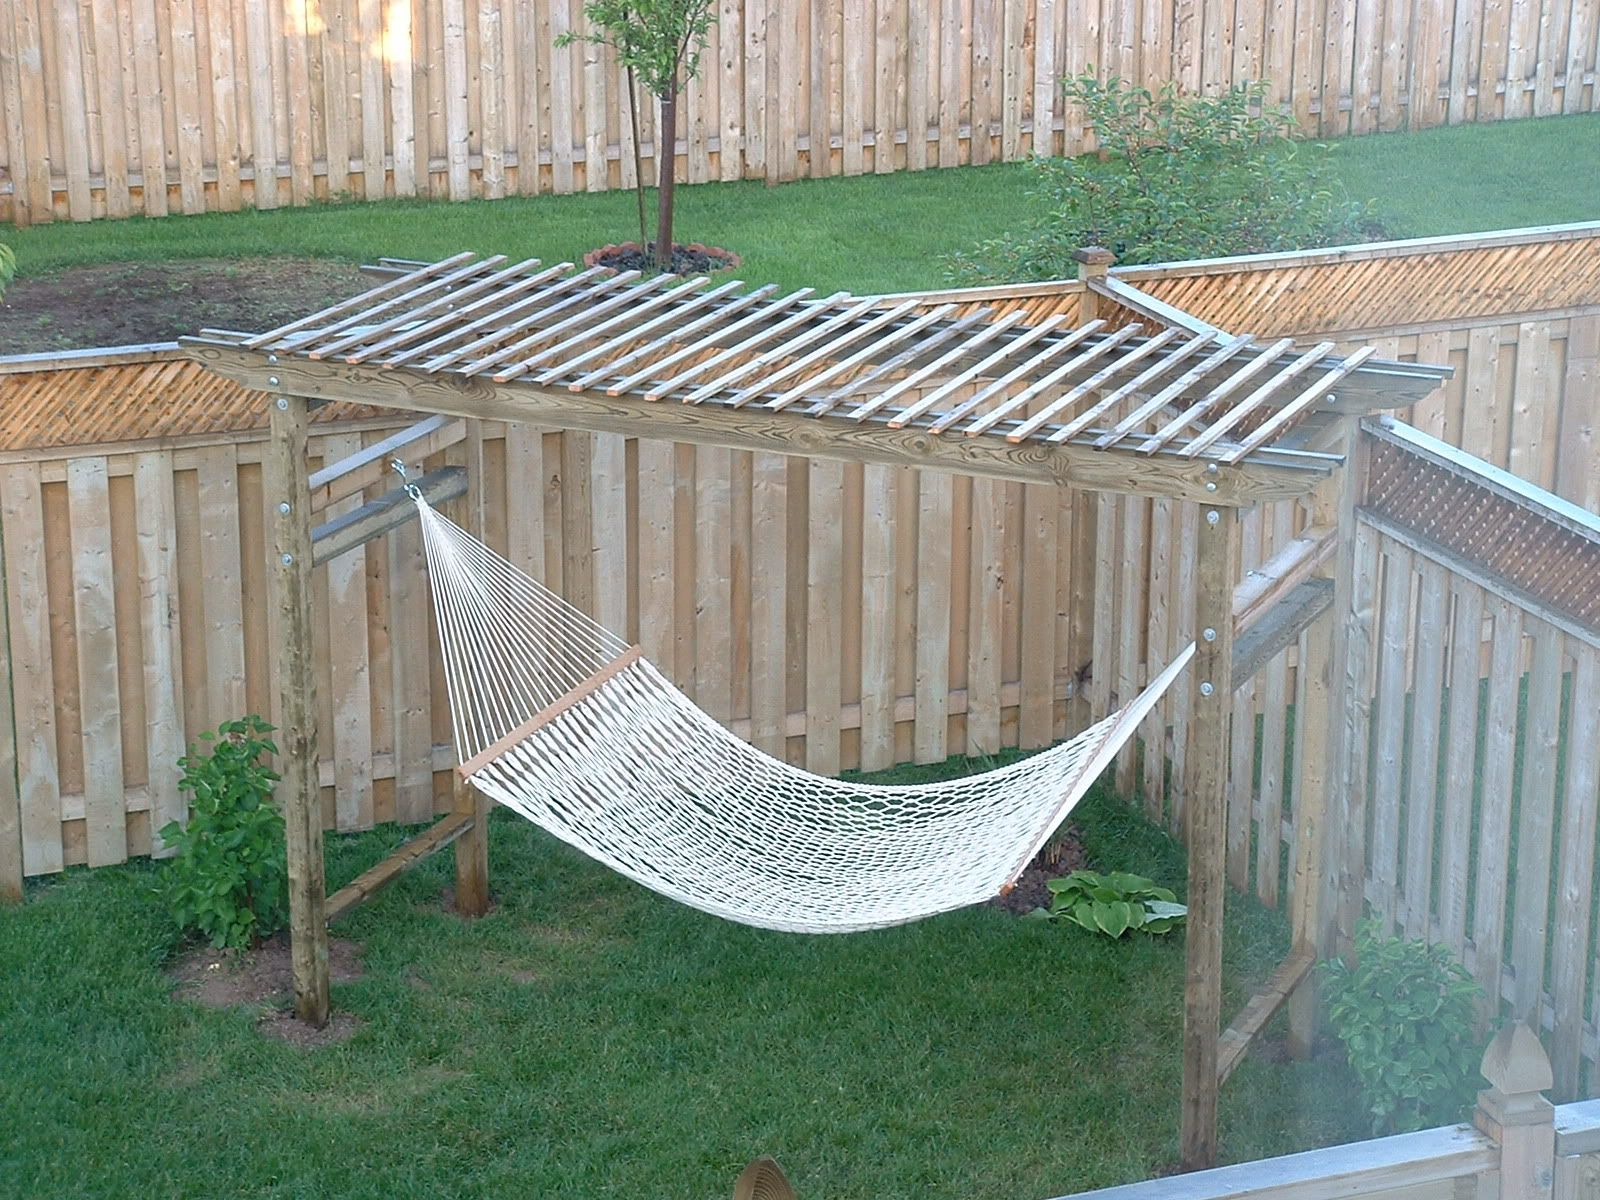 Hammock Pergola Designs | Any suggestions for deck ...